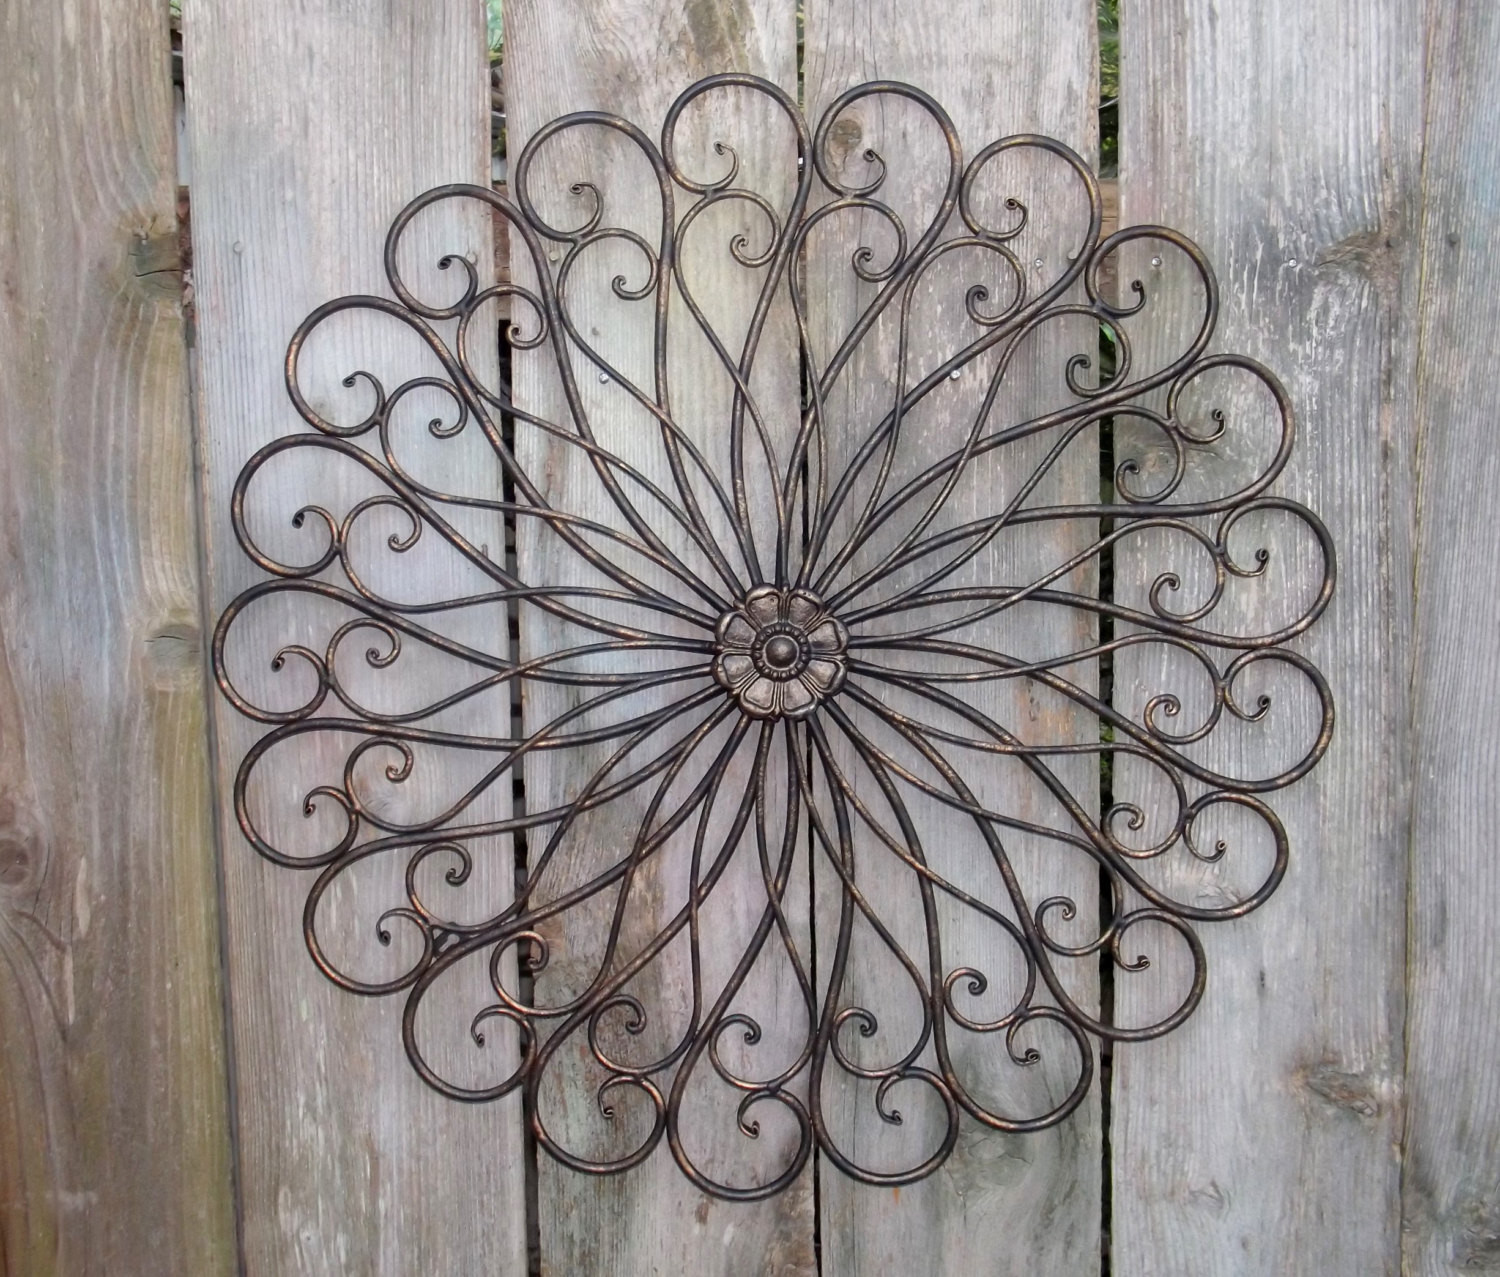 Best ideas about Wrought Iron Wall Art . Save or Pin Wall Wrought Iron Decor Round Wrought by Now.